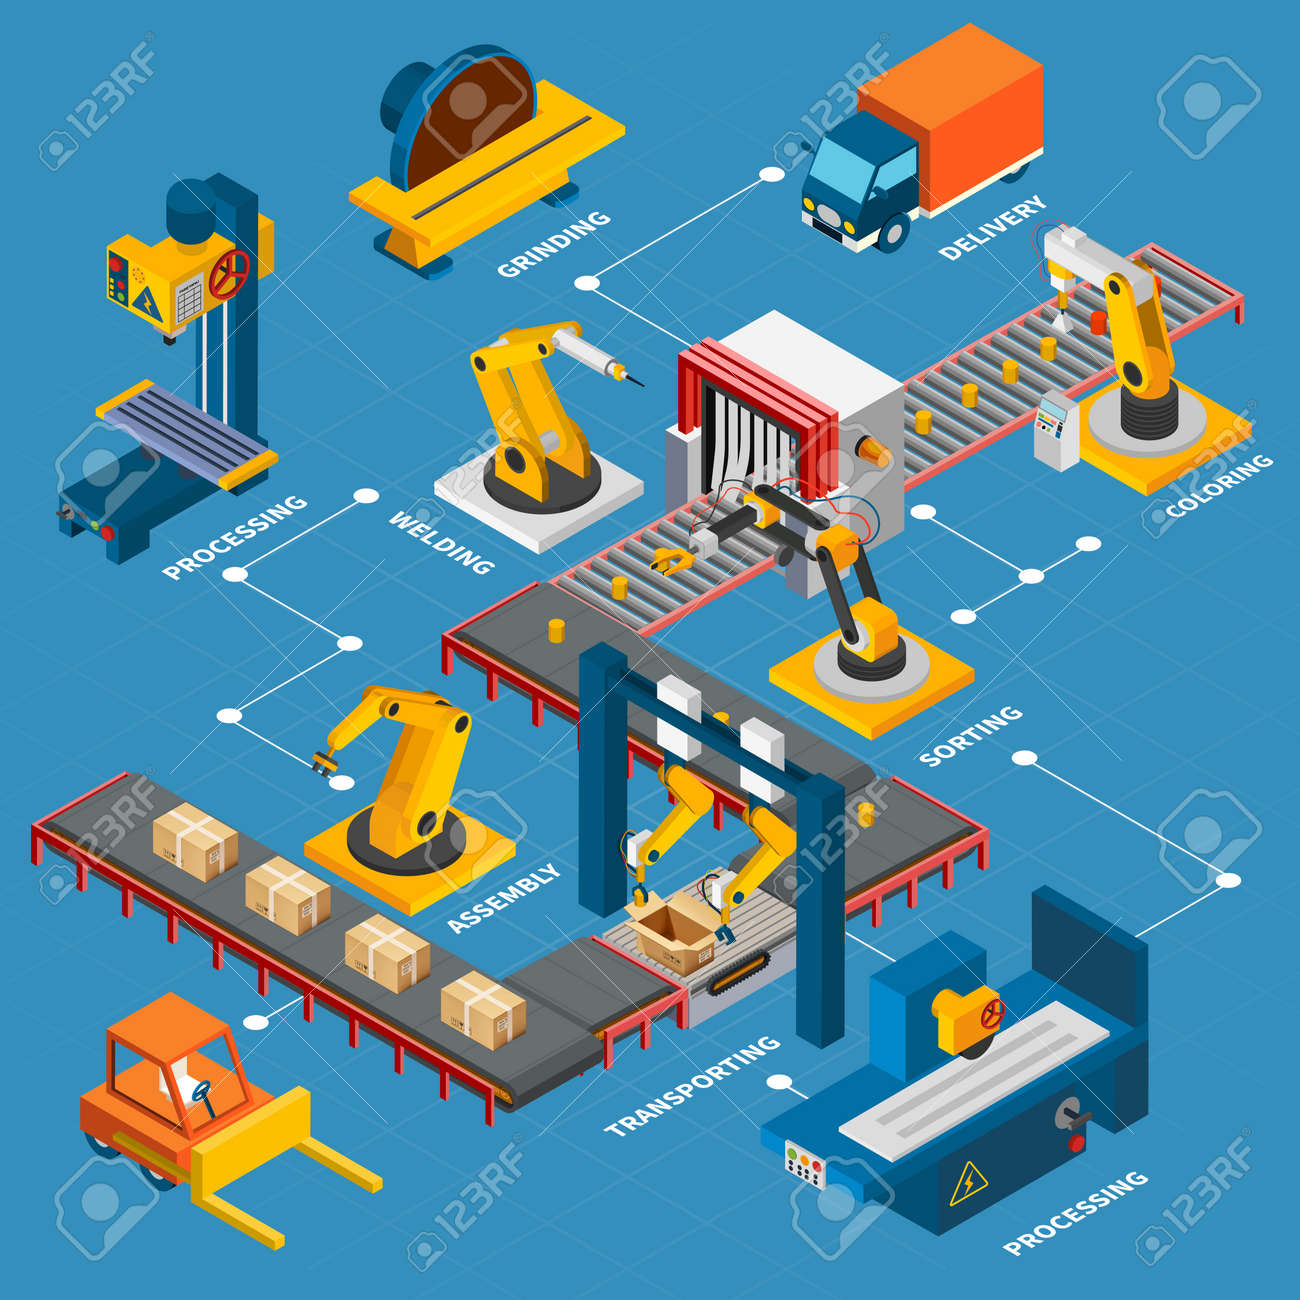 Industrial machines isometric flowchart with images of conveyors and robotic manipulators with truck and text captions vector illustration - 166095105